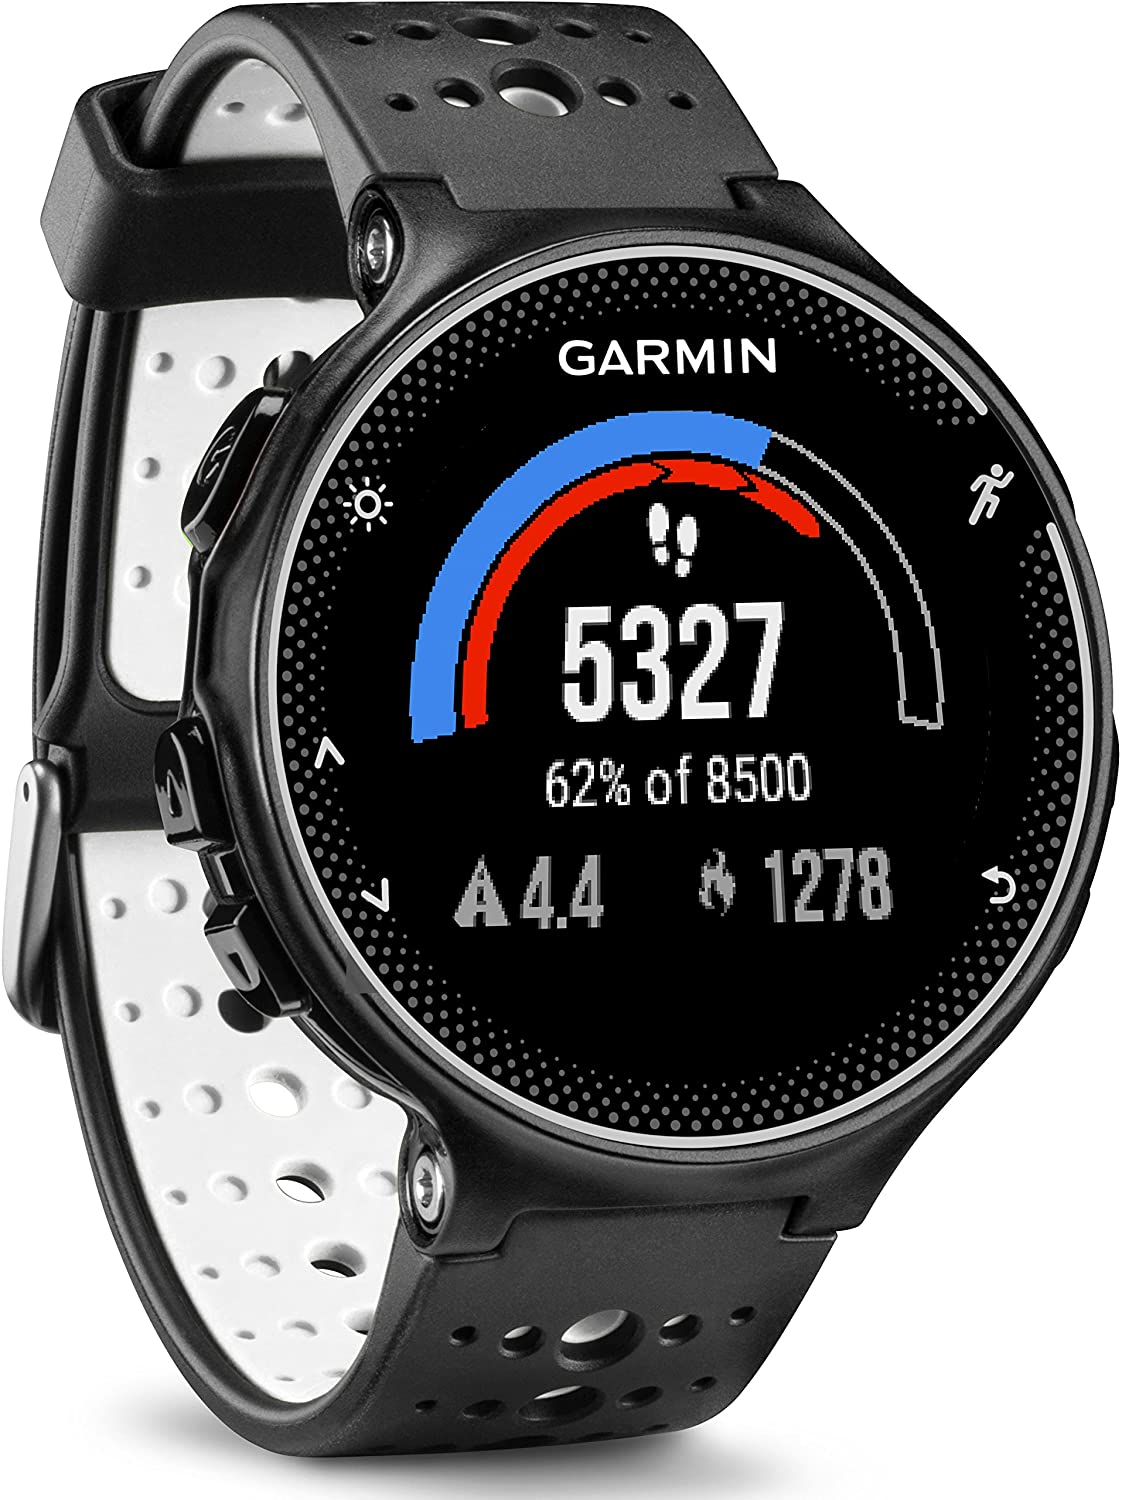 Garmin GPS Forerunner amazon